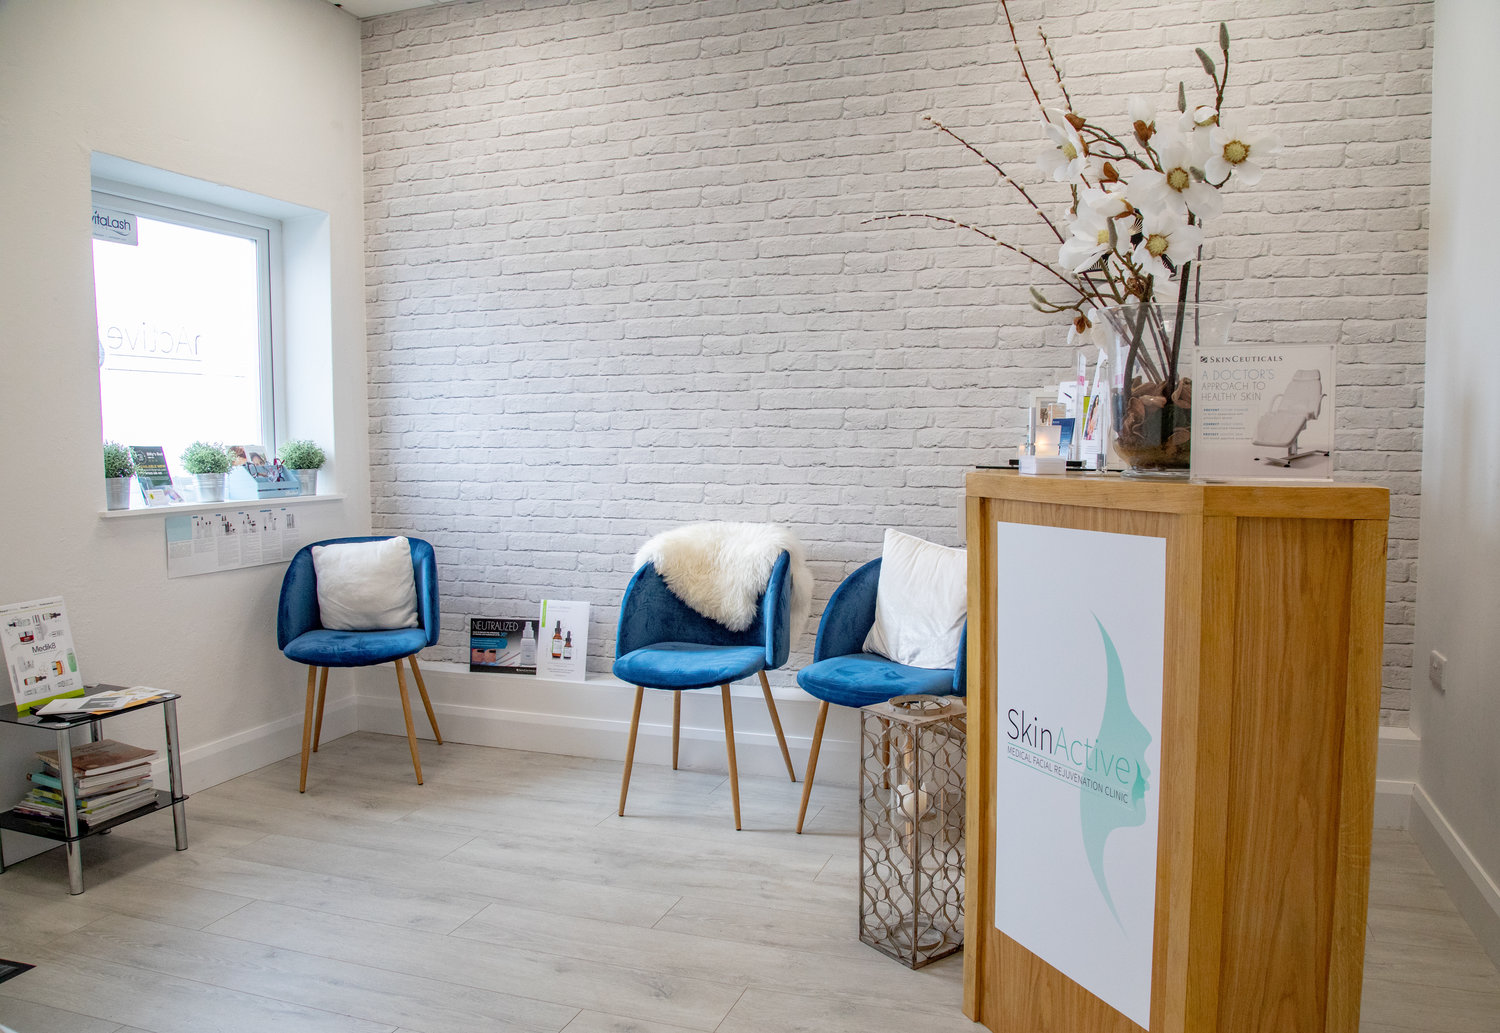 Sunekos | Skin Active Clinic | Omagh |